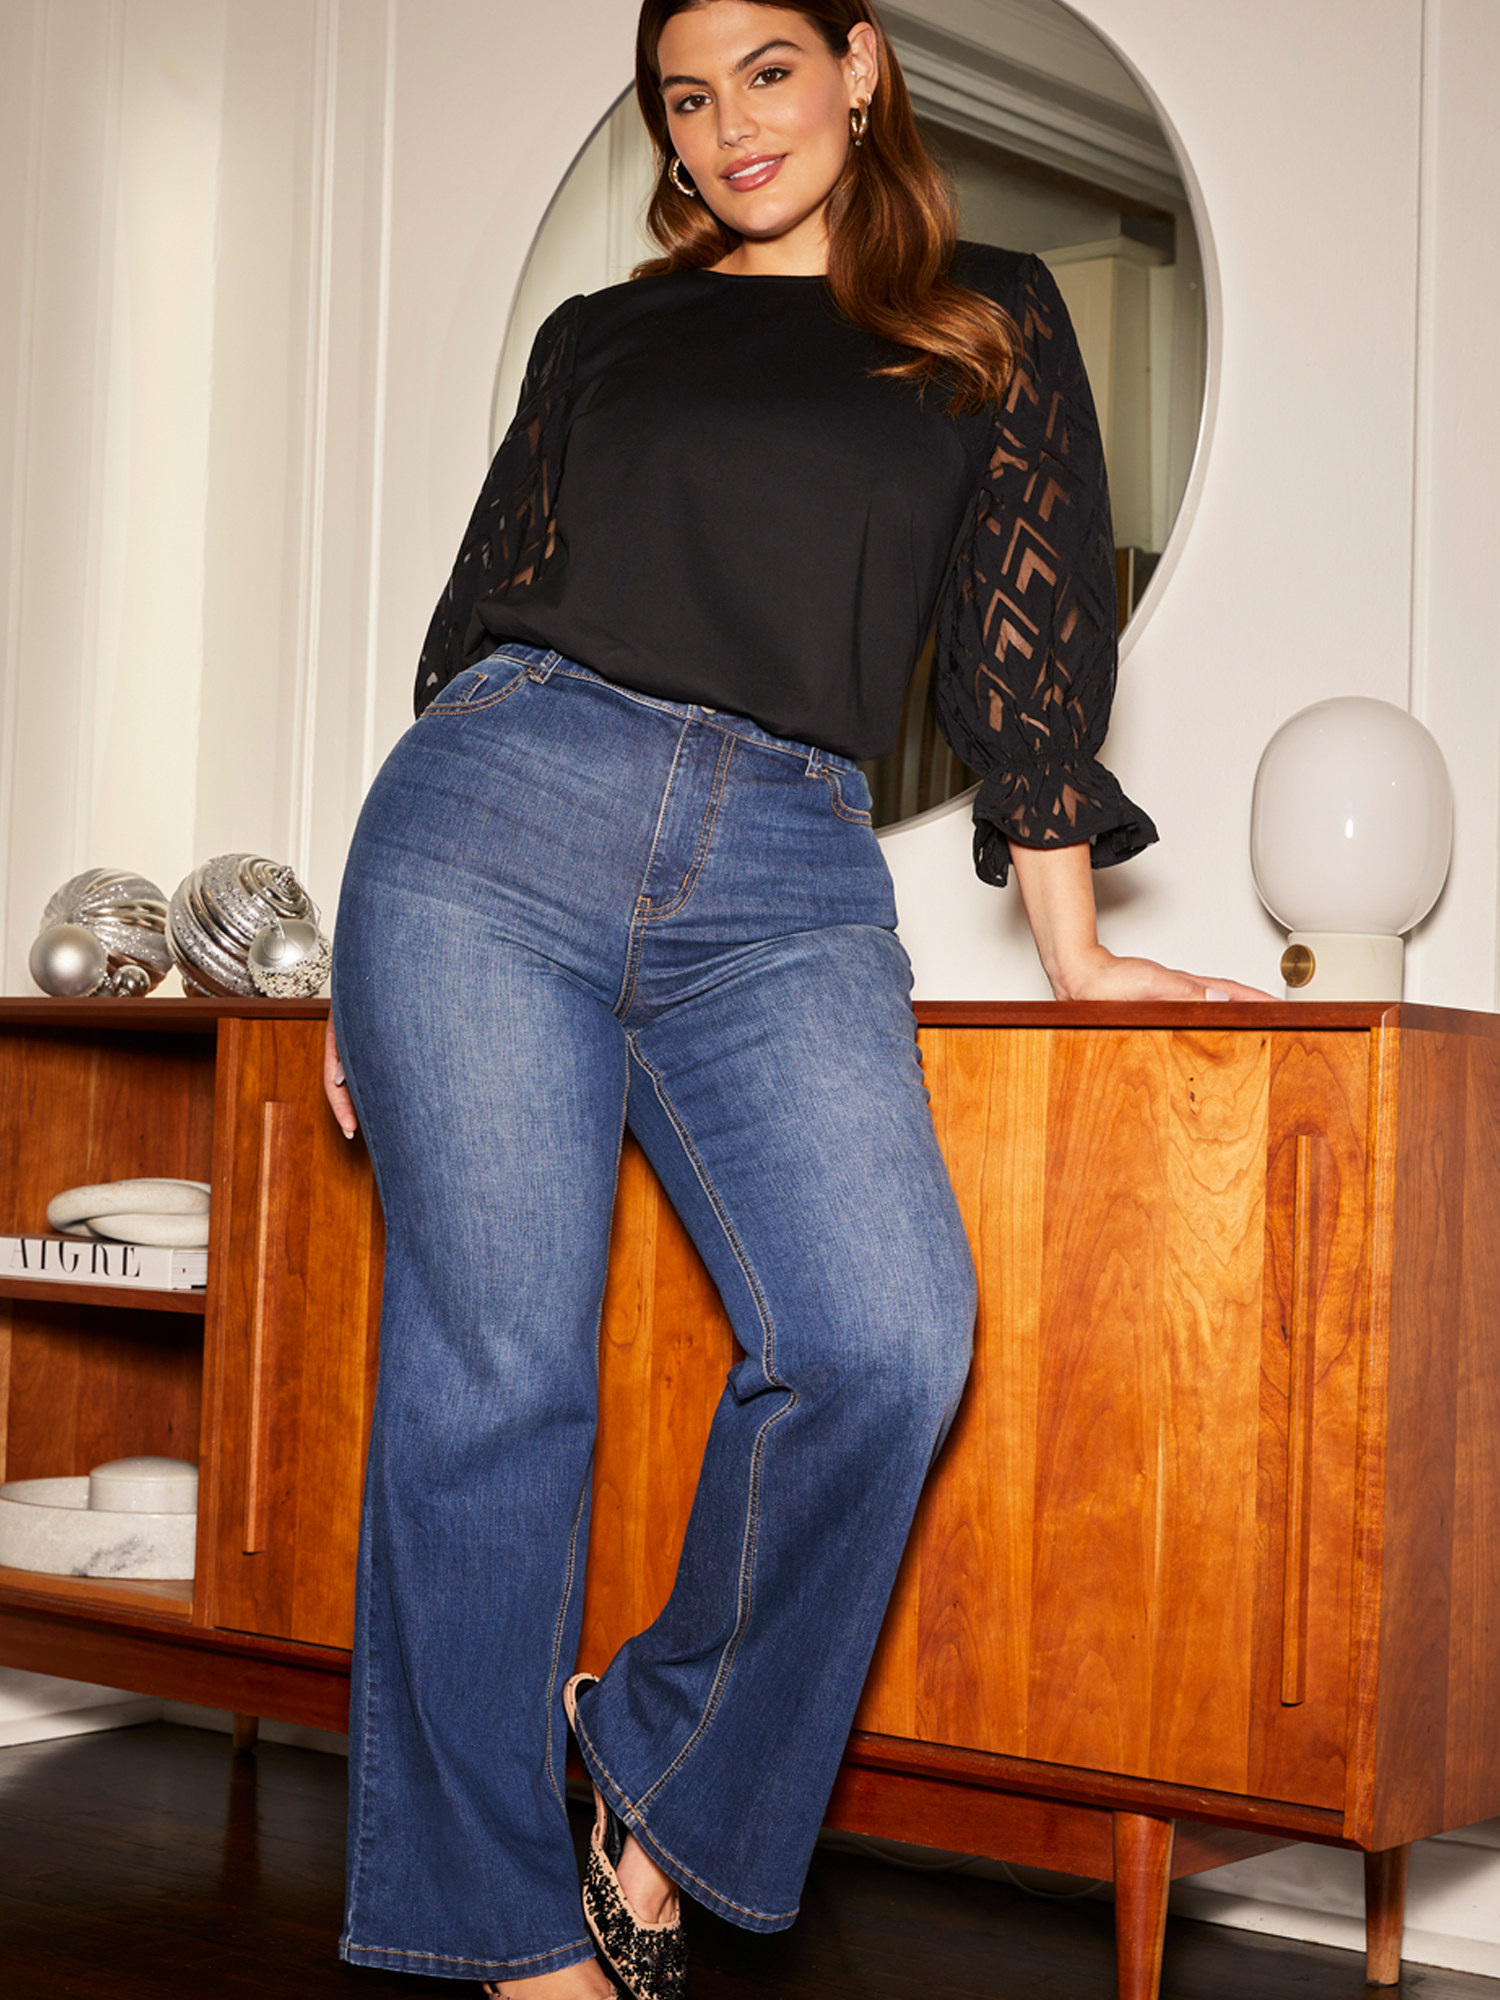 A model wearing the flare jeans